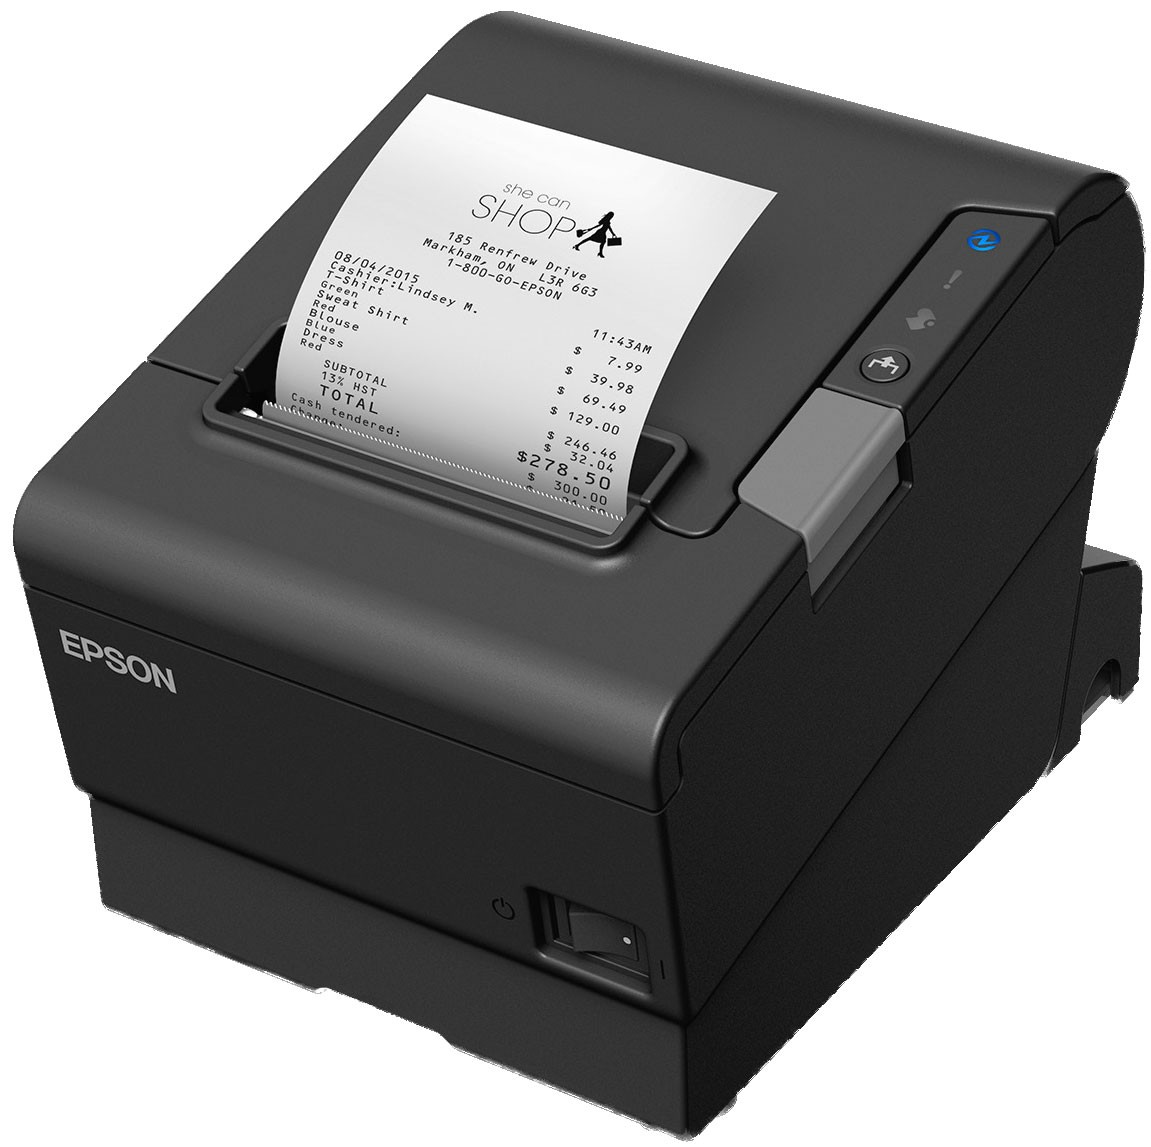 Epson TM-T88VI Serial Printer; black (TM886SNG)